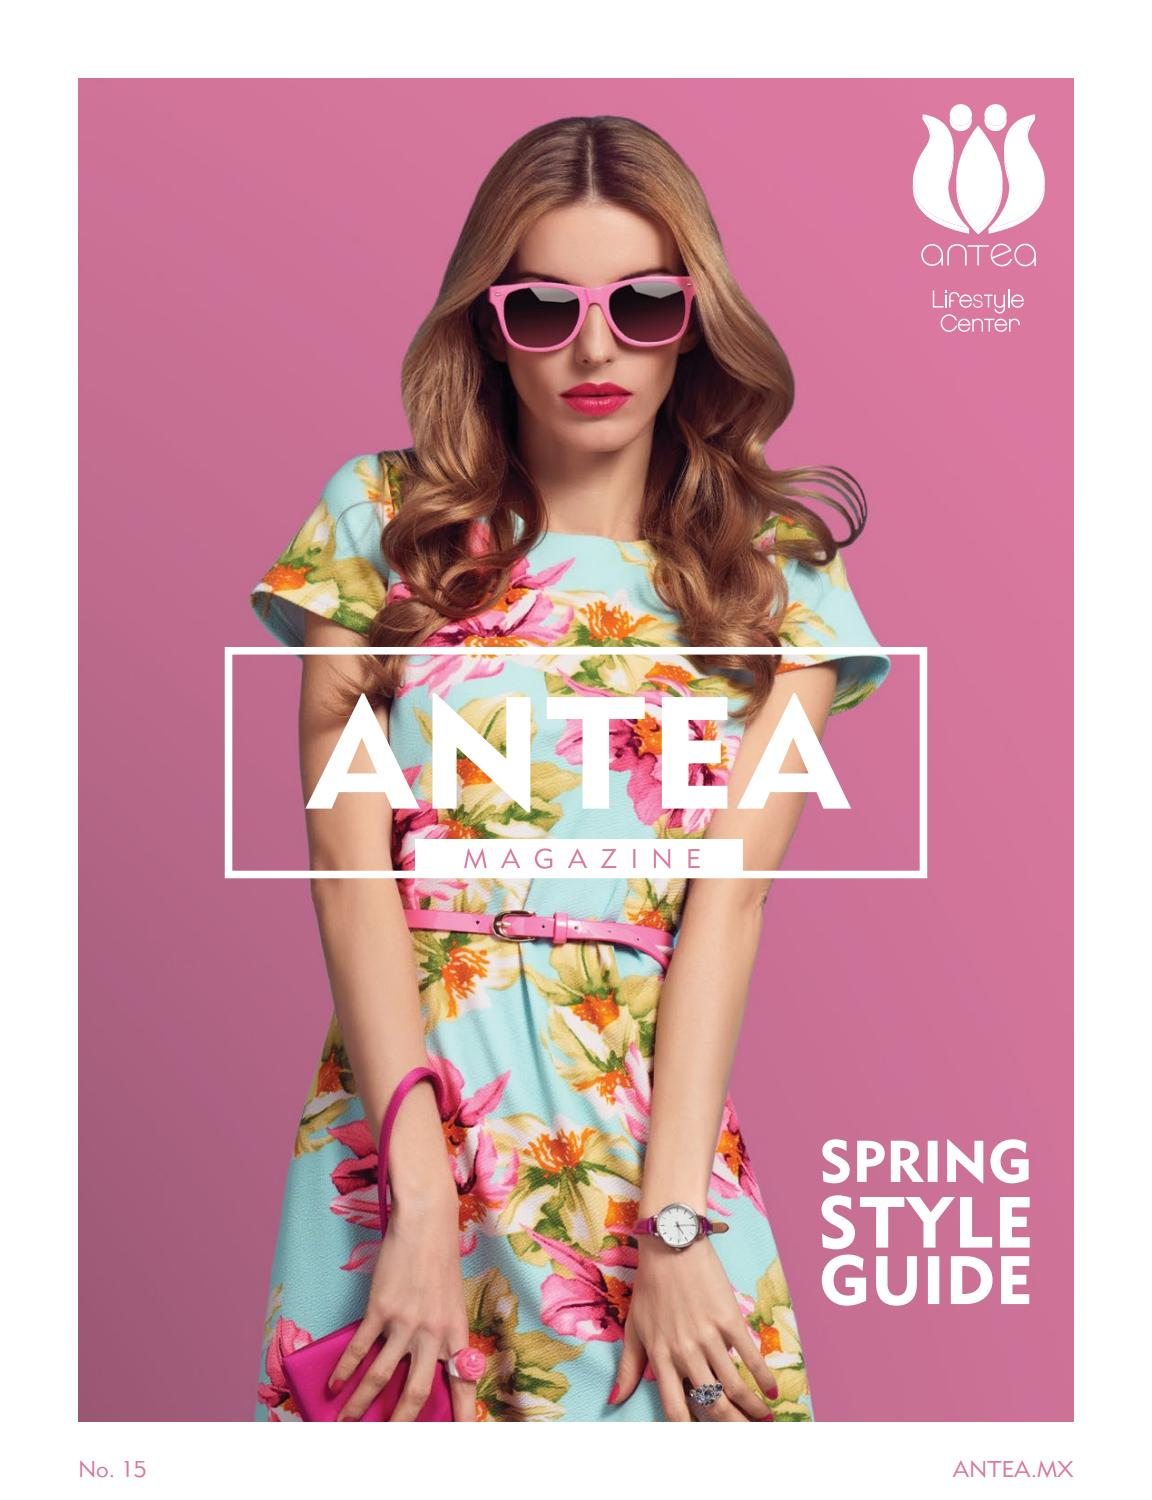 ANTEA MAGAZINE #15 PRIMAVERA 2018 by QUATRO GLOBAL MEDIA - issuu